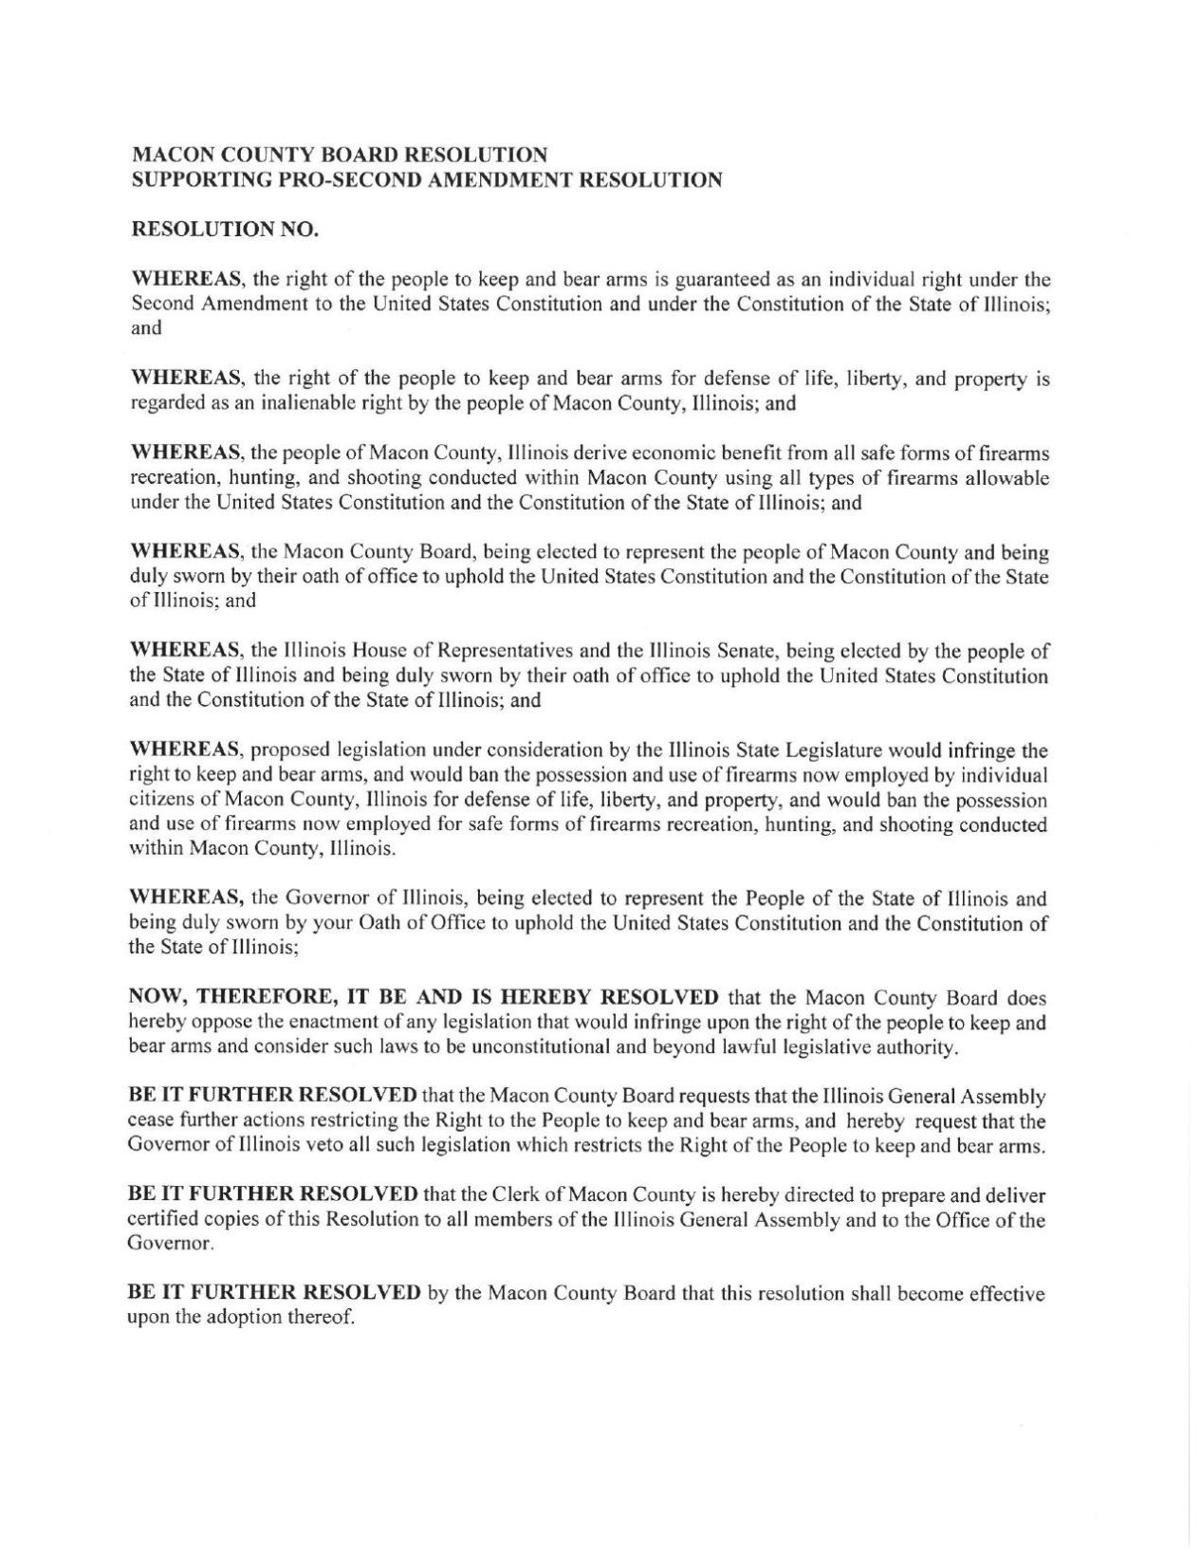 For Your Review and Consideration - Macon County Board Approves Resolution Supporting the 2nd Amendment